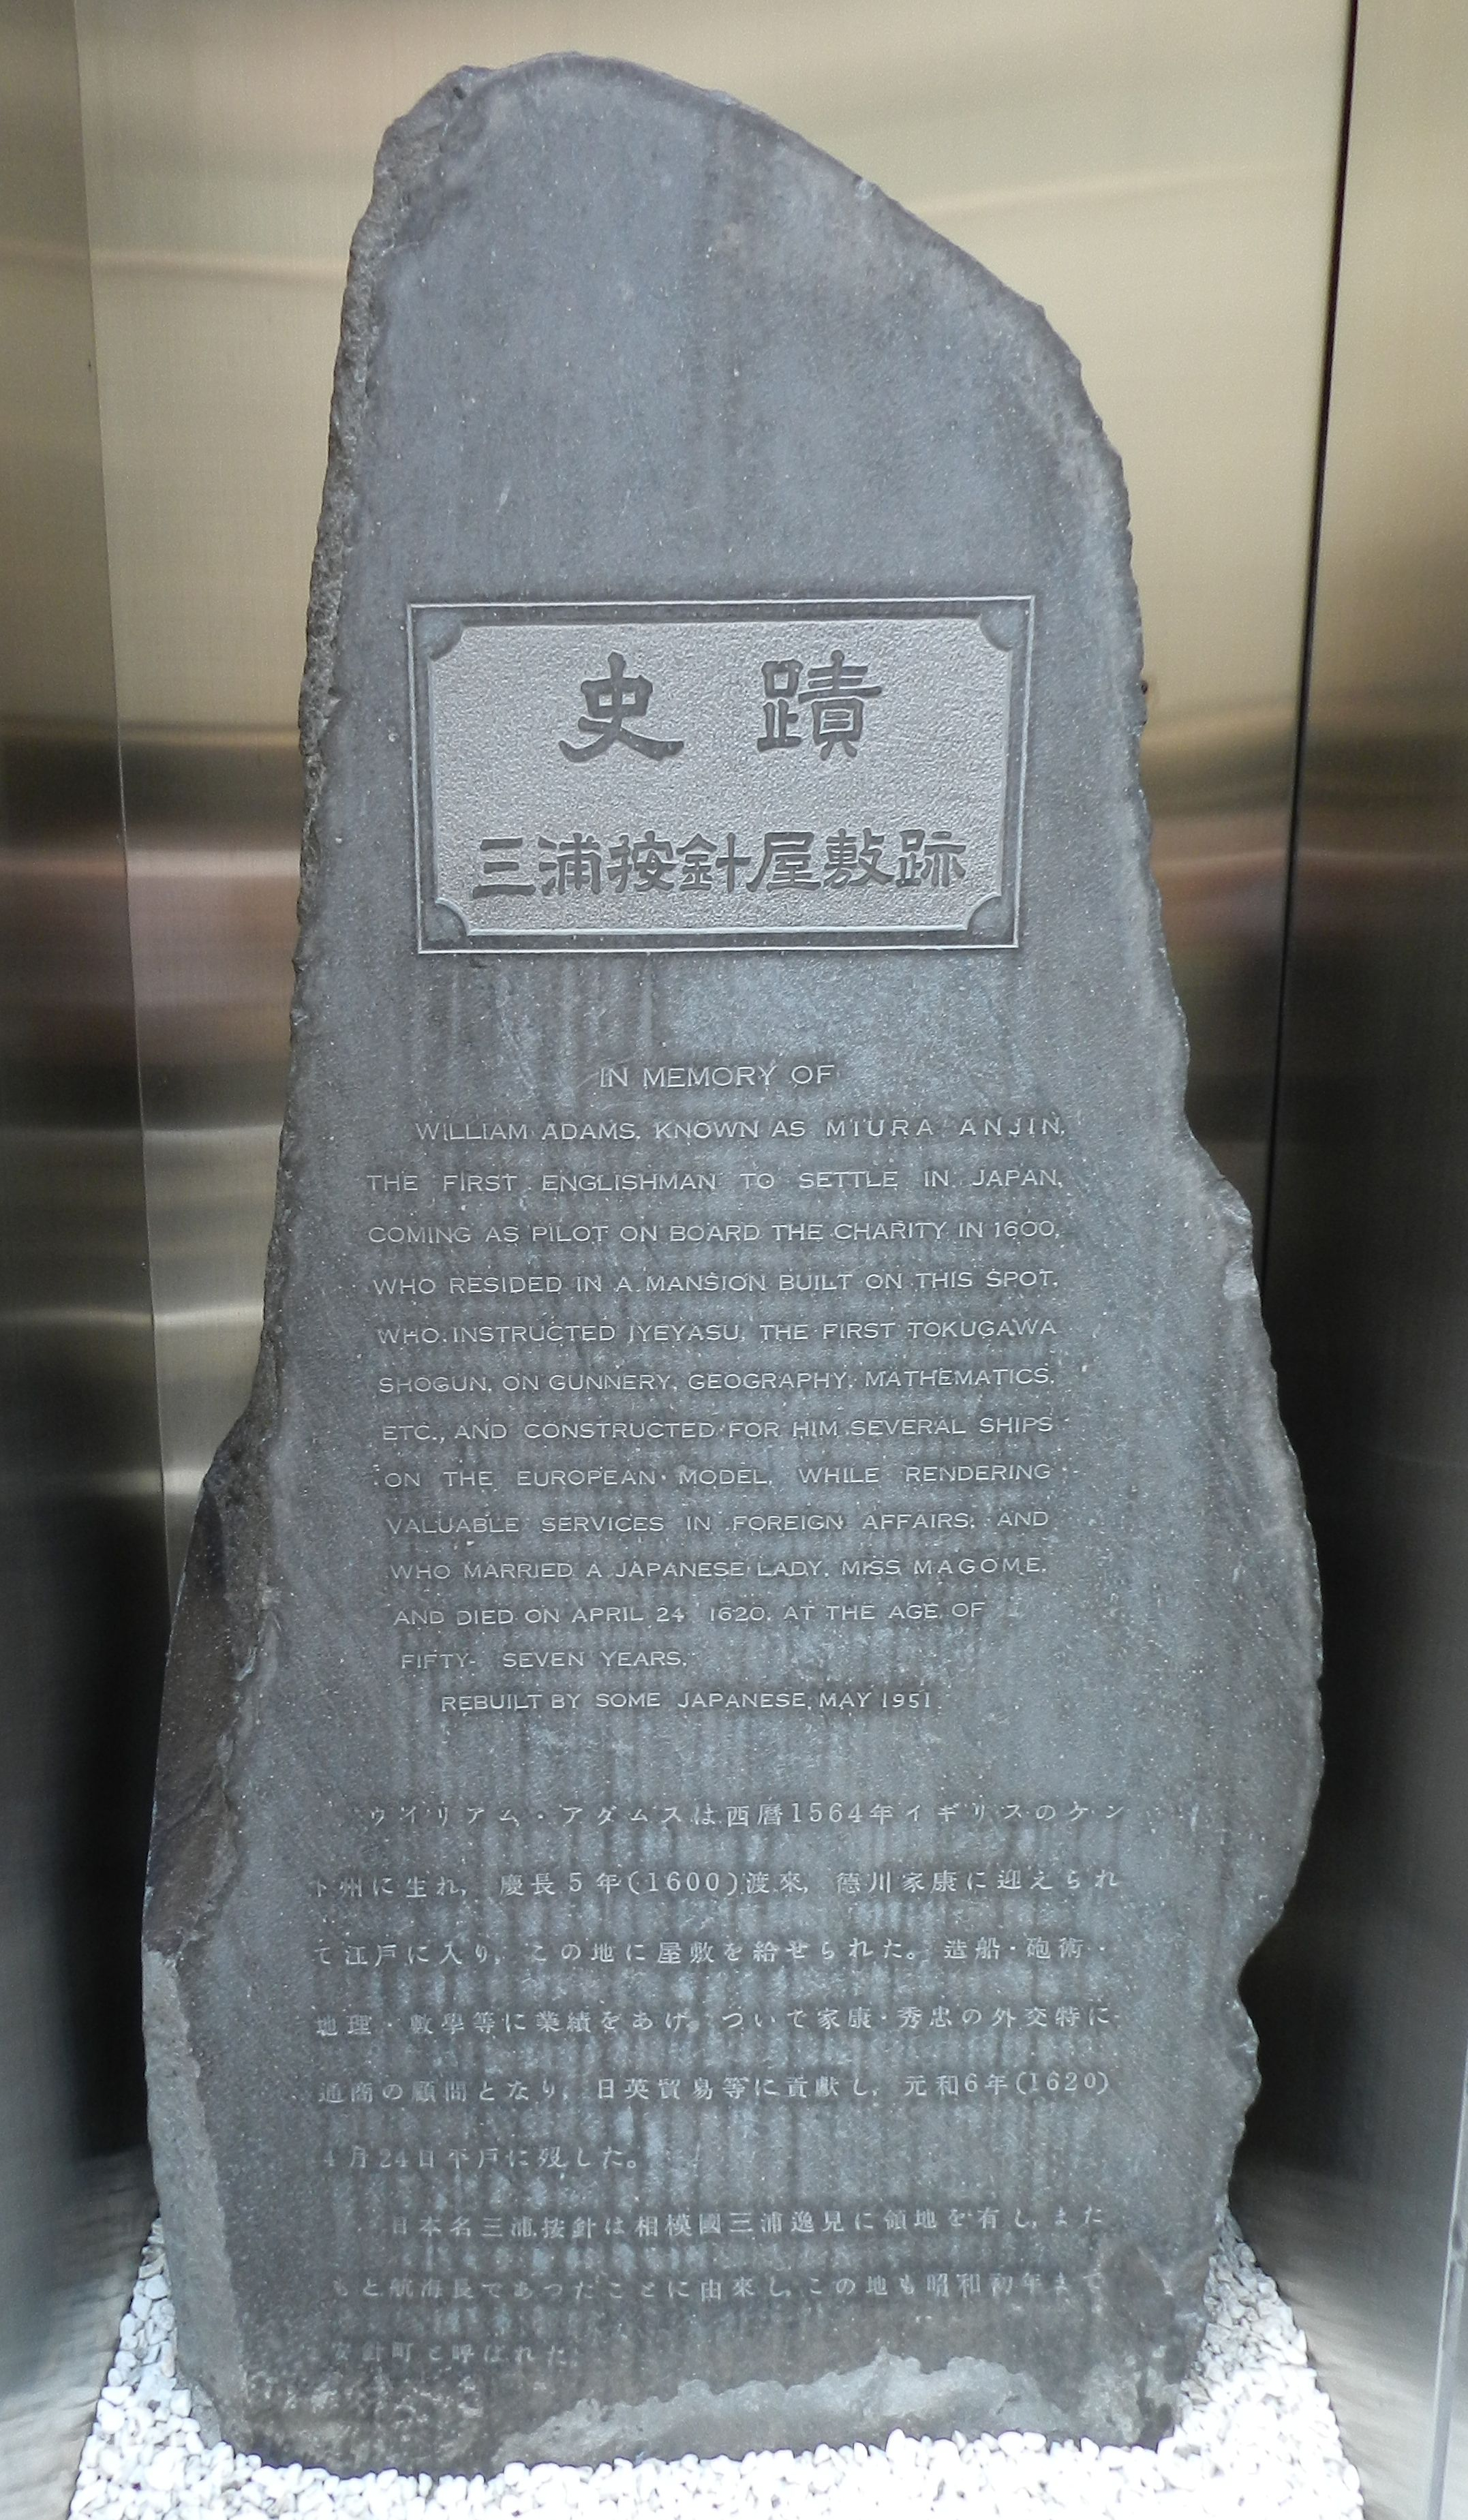 Plaque commemorating the location of William Adams's apartment in Edo.